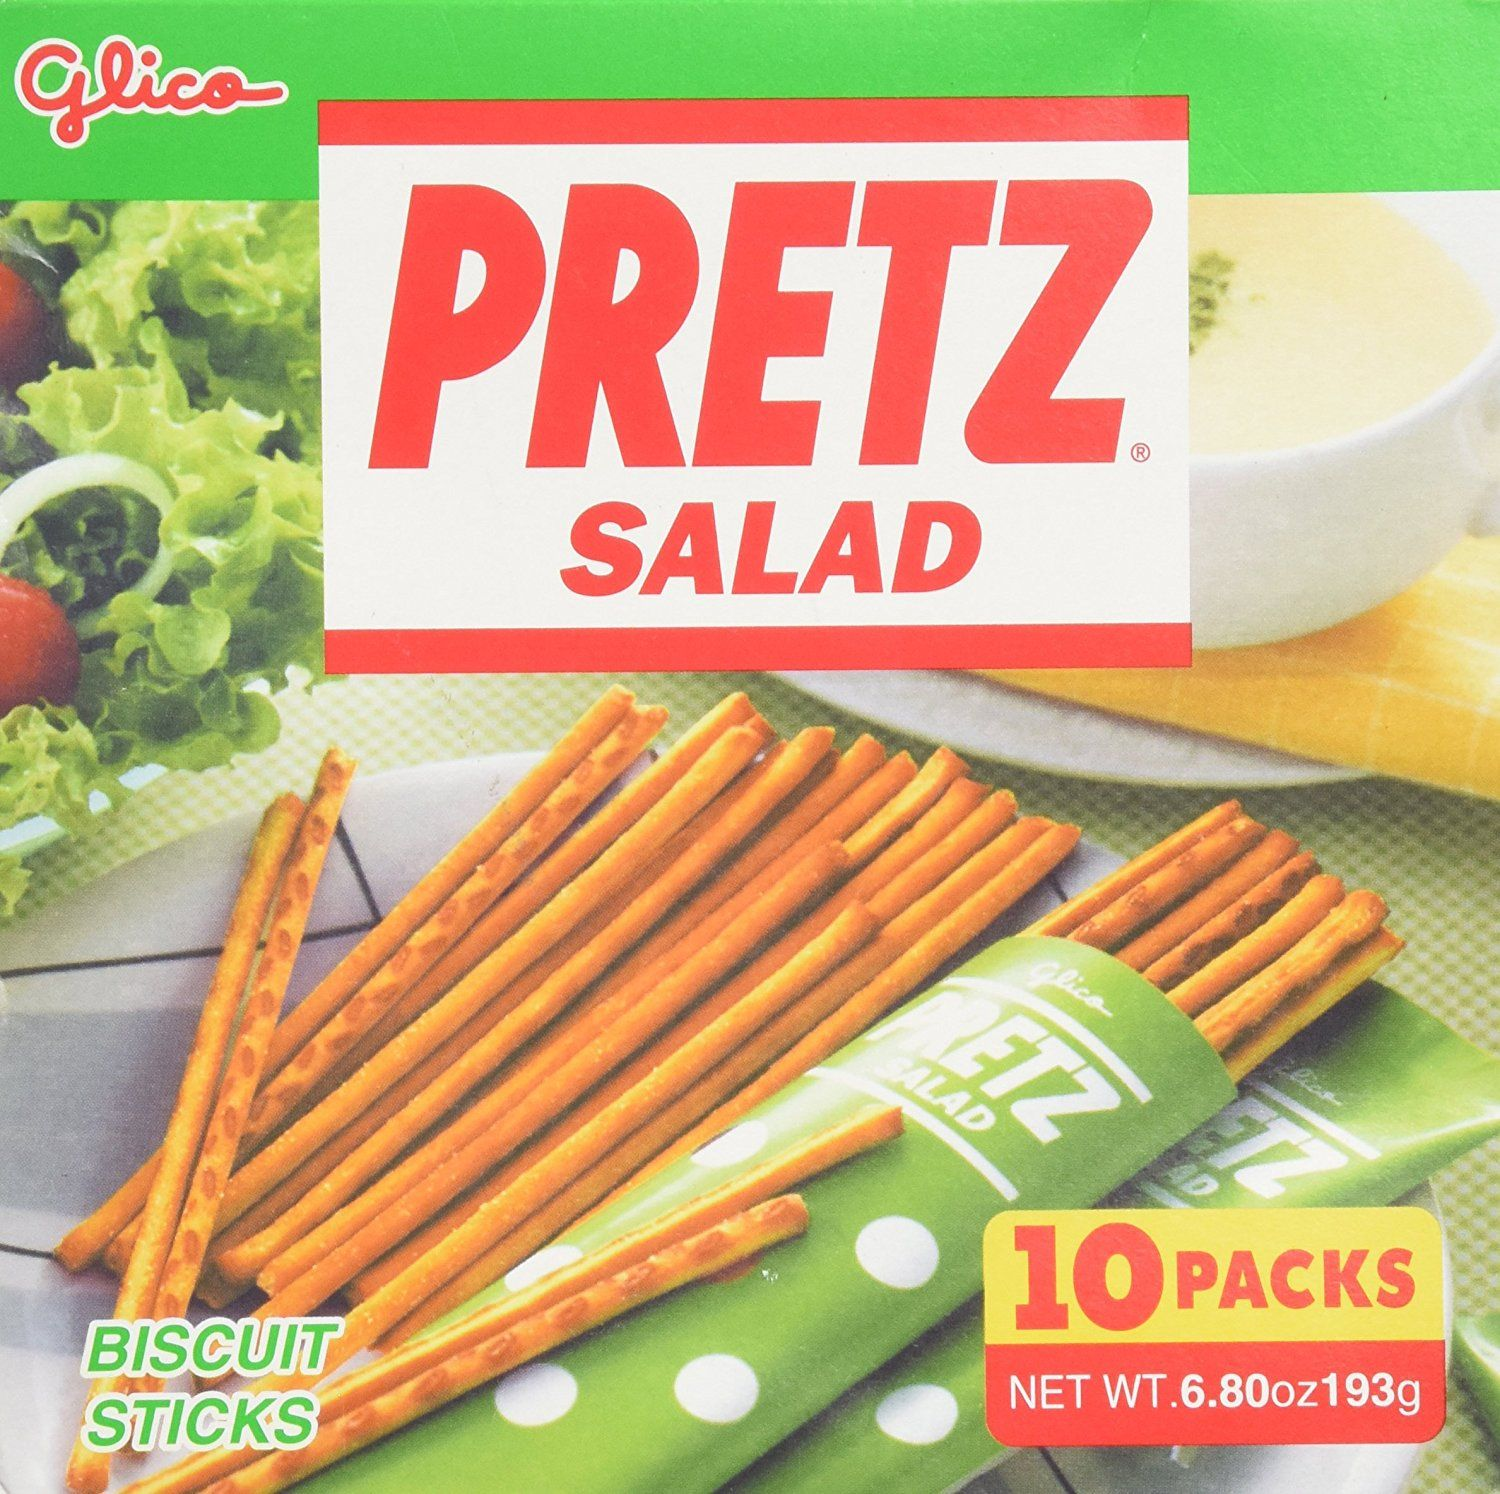 Pretz Salad Flavor Biscuit Sticks Gift Box Set (1 Box of 10 Mini-Bags) *** Discover this special product, click the image : Gift Baskets